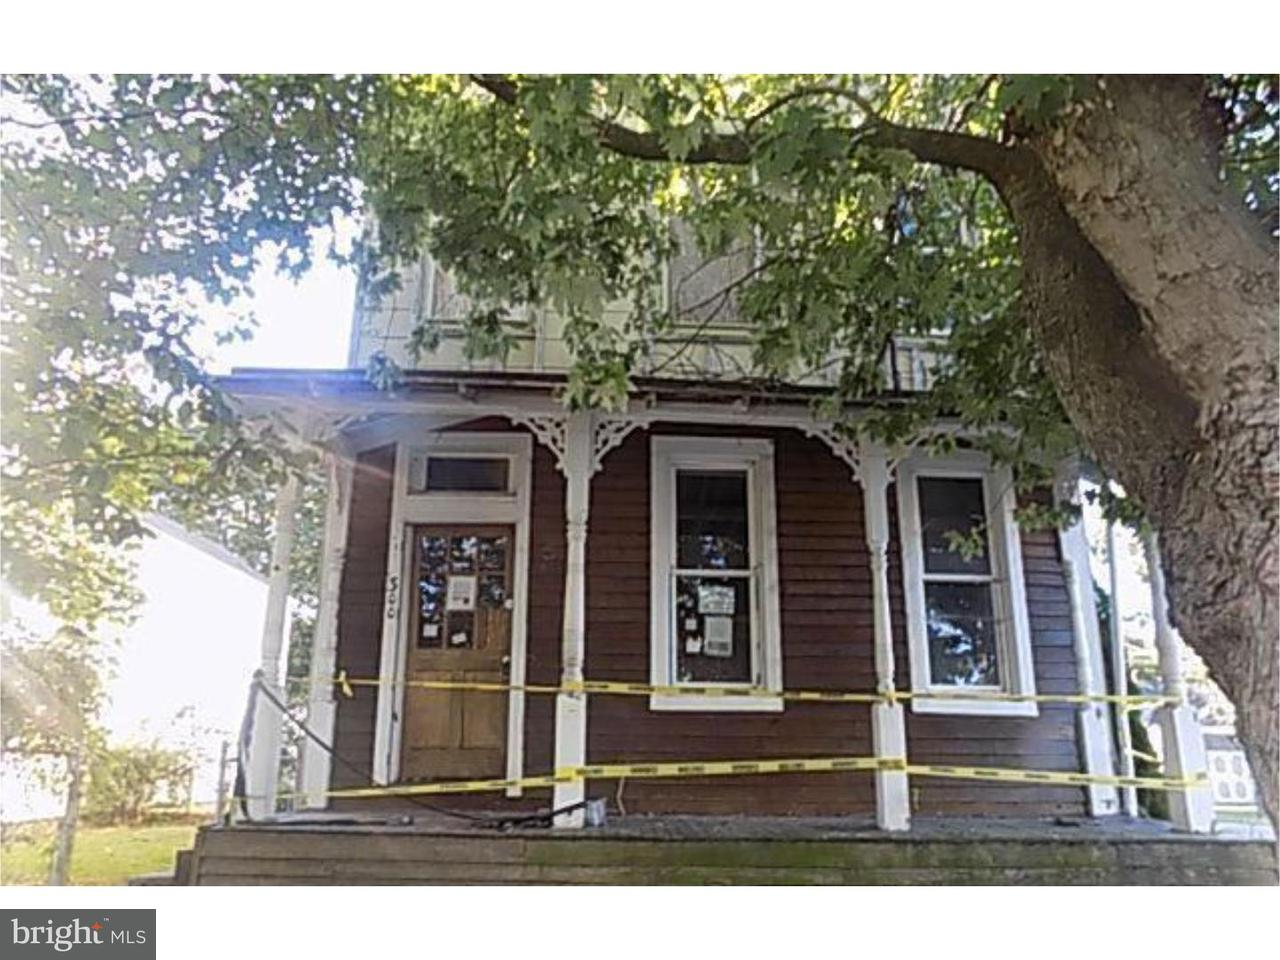 Single Family Home for Sale at 300 WASHINGTON Street Delaware City, Delaware 19706 United States